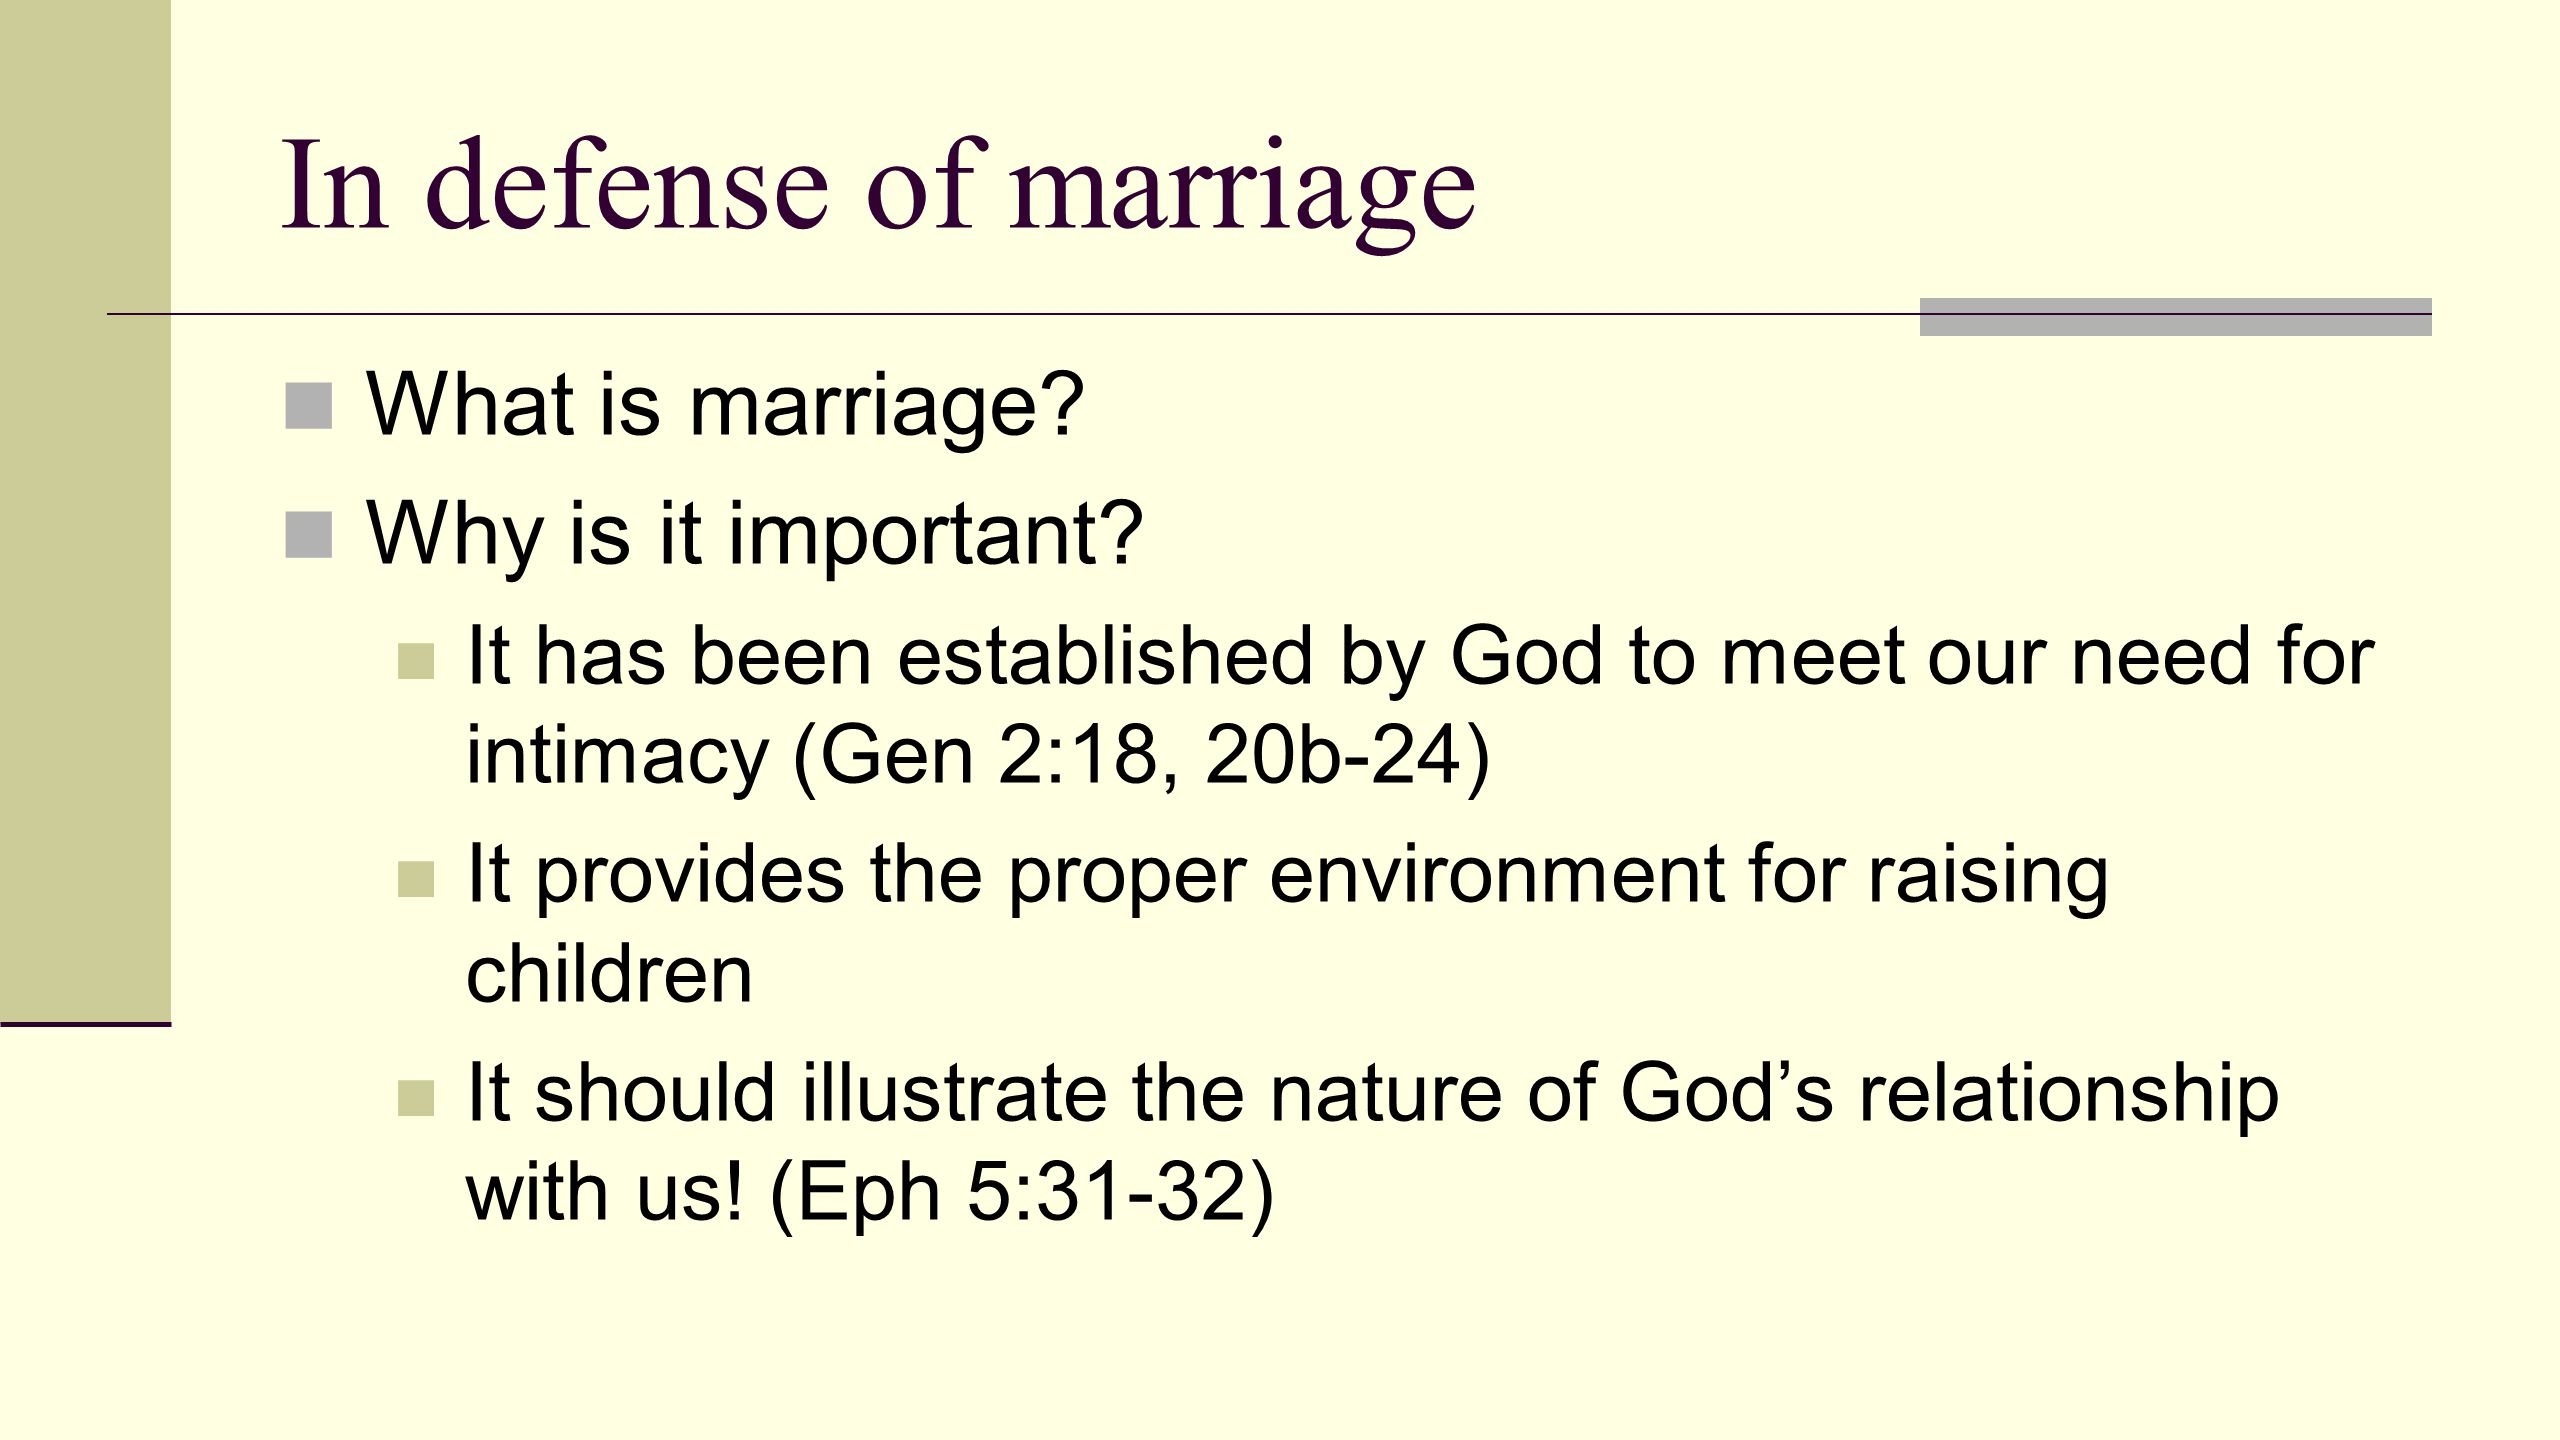 In defense of marriage What is marriage? Why is it important? It has been established by God to meet our need for intimacy (Gen 2:18, 20b-24) It provi